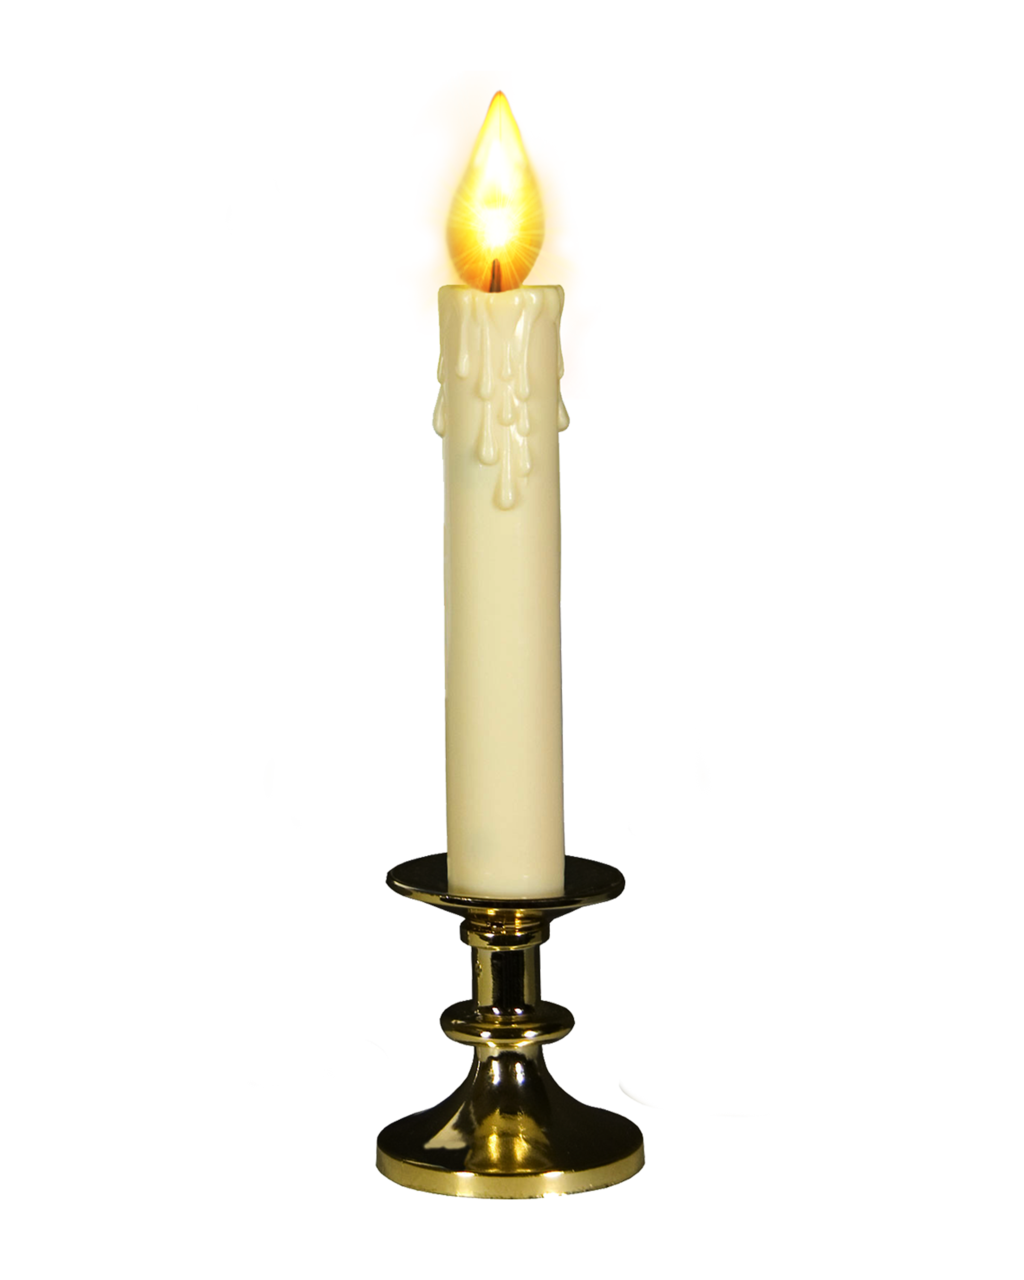 Burning Candle Png Hd - Png Candle By Moonglowlilly Png Candle By Moonglowlilly   Candle Hd Png, Transparent background PNG HD thumbnail